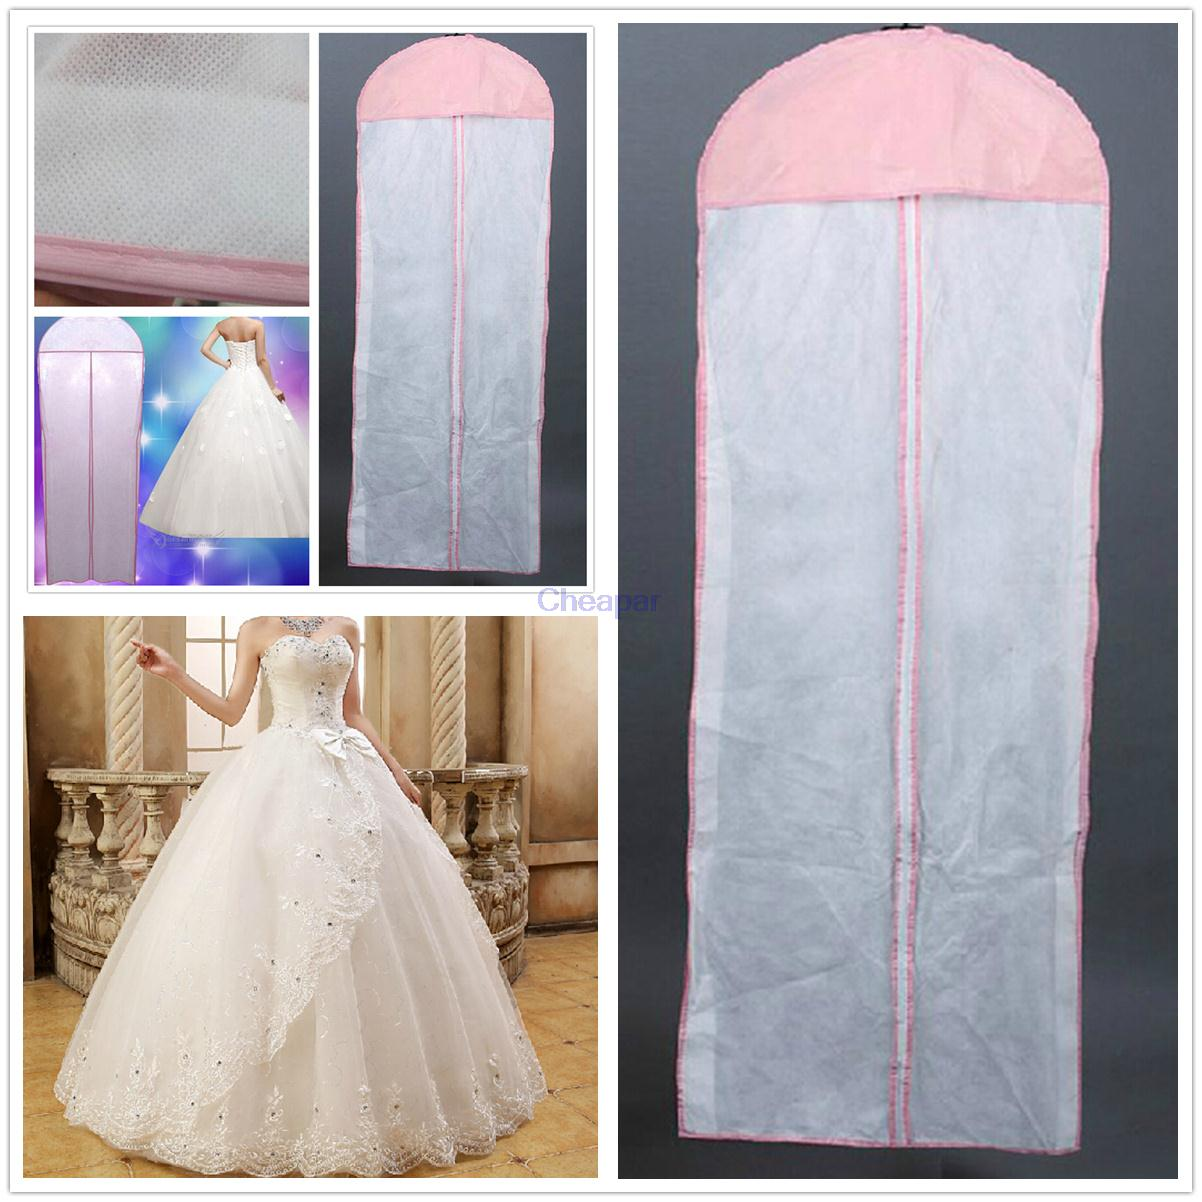 New White Breathable Wedding Prom Dress Bridal Gown Garment Hanging Storage Bag Clothes  ...